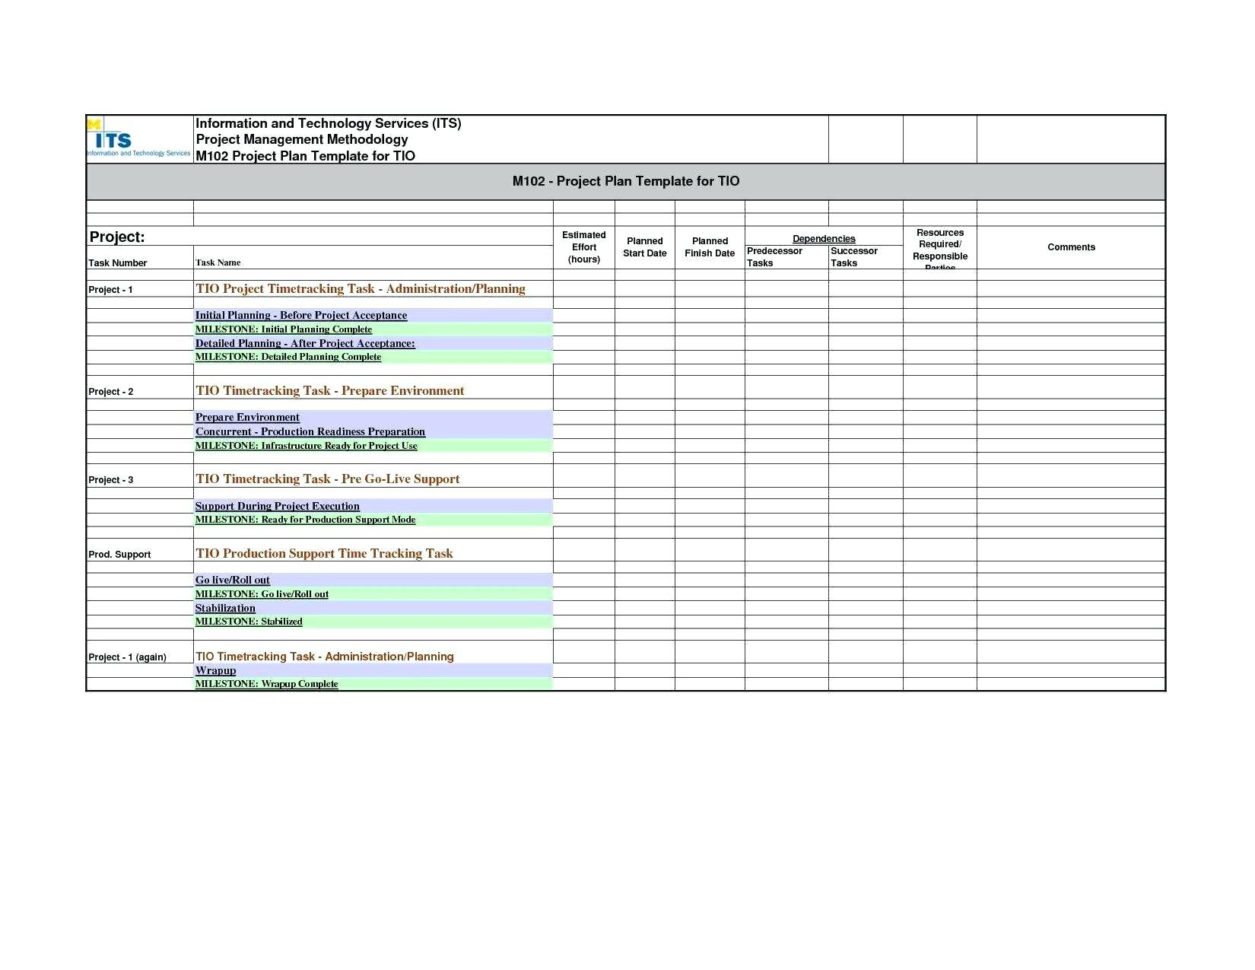 Construction Spreadsheet Templates Free Throughout Project Management Spreadsheet Templates Sample Free Construction